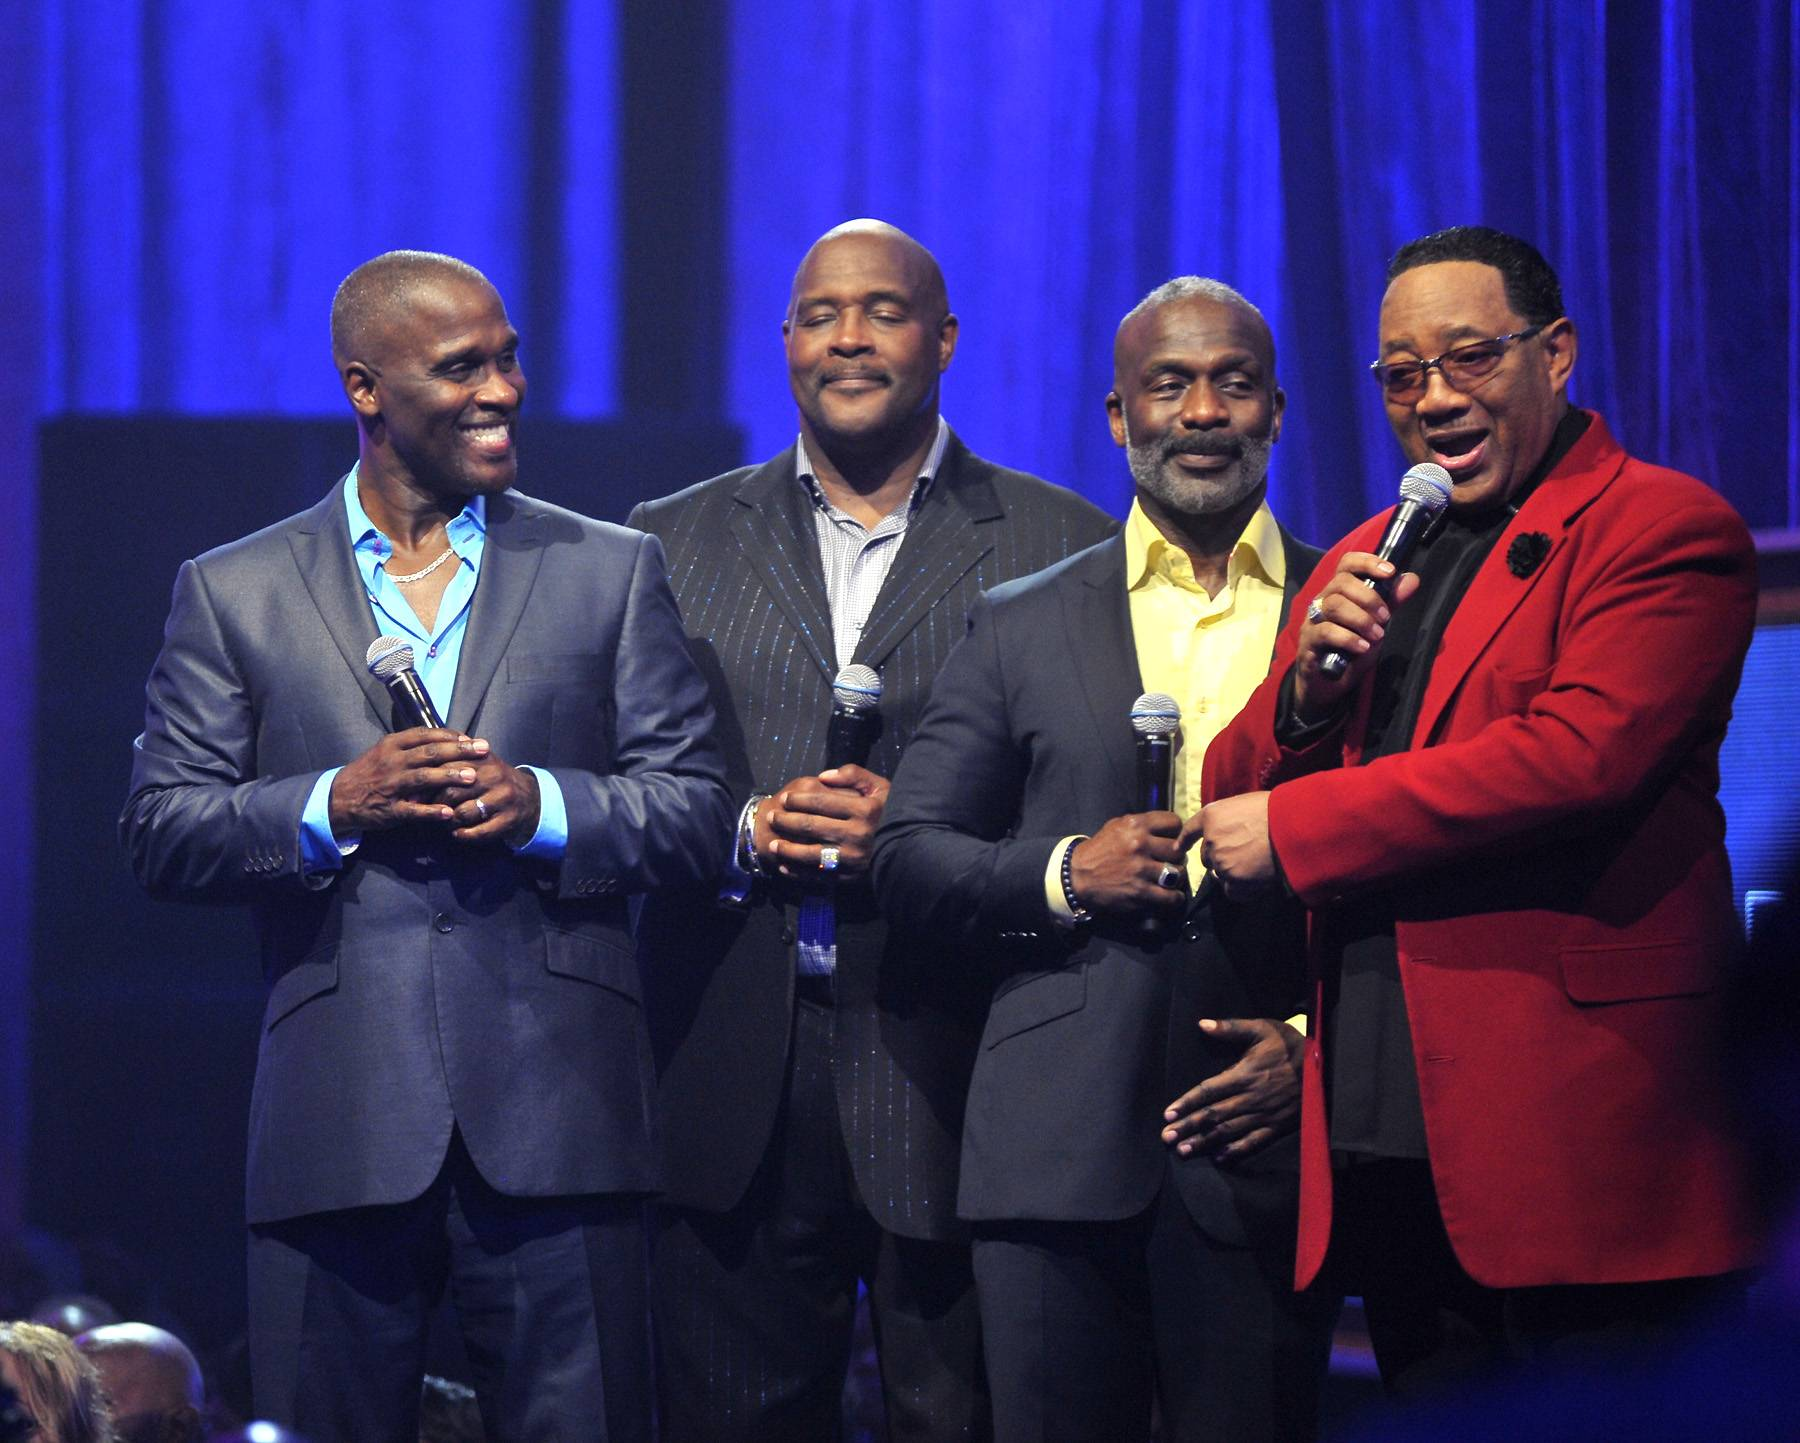 3WB and Dr. Jones - Bobby Jonesspeaks with 3WB during the taping of BET's Bobby Jones Gospel at BET Studios on August 2, 2014, in Washington, D.C.(Photo: Kris Connor/Getty Images for BET Networks)